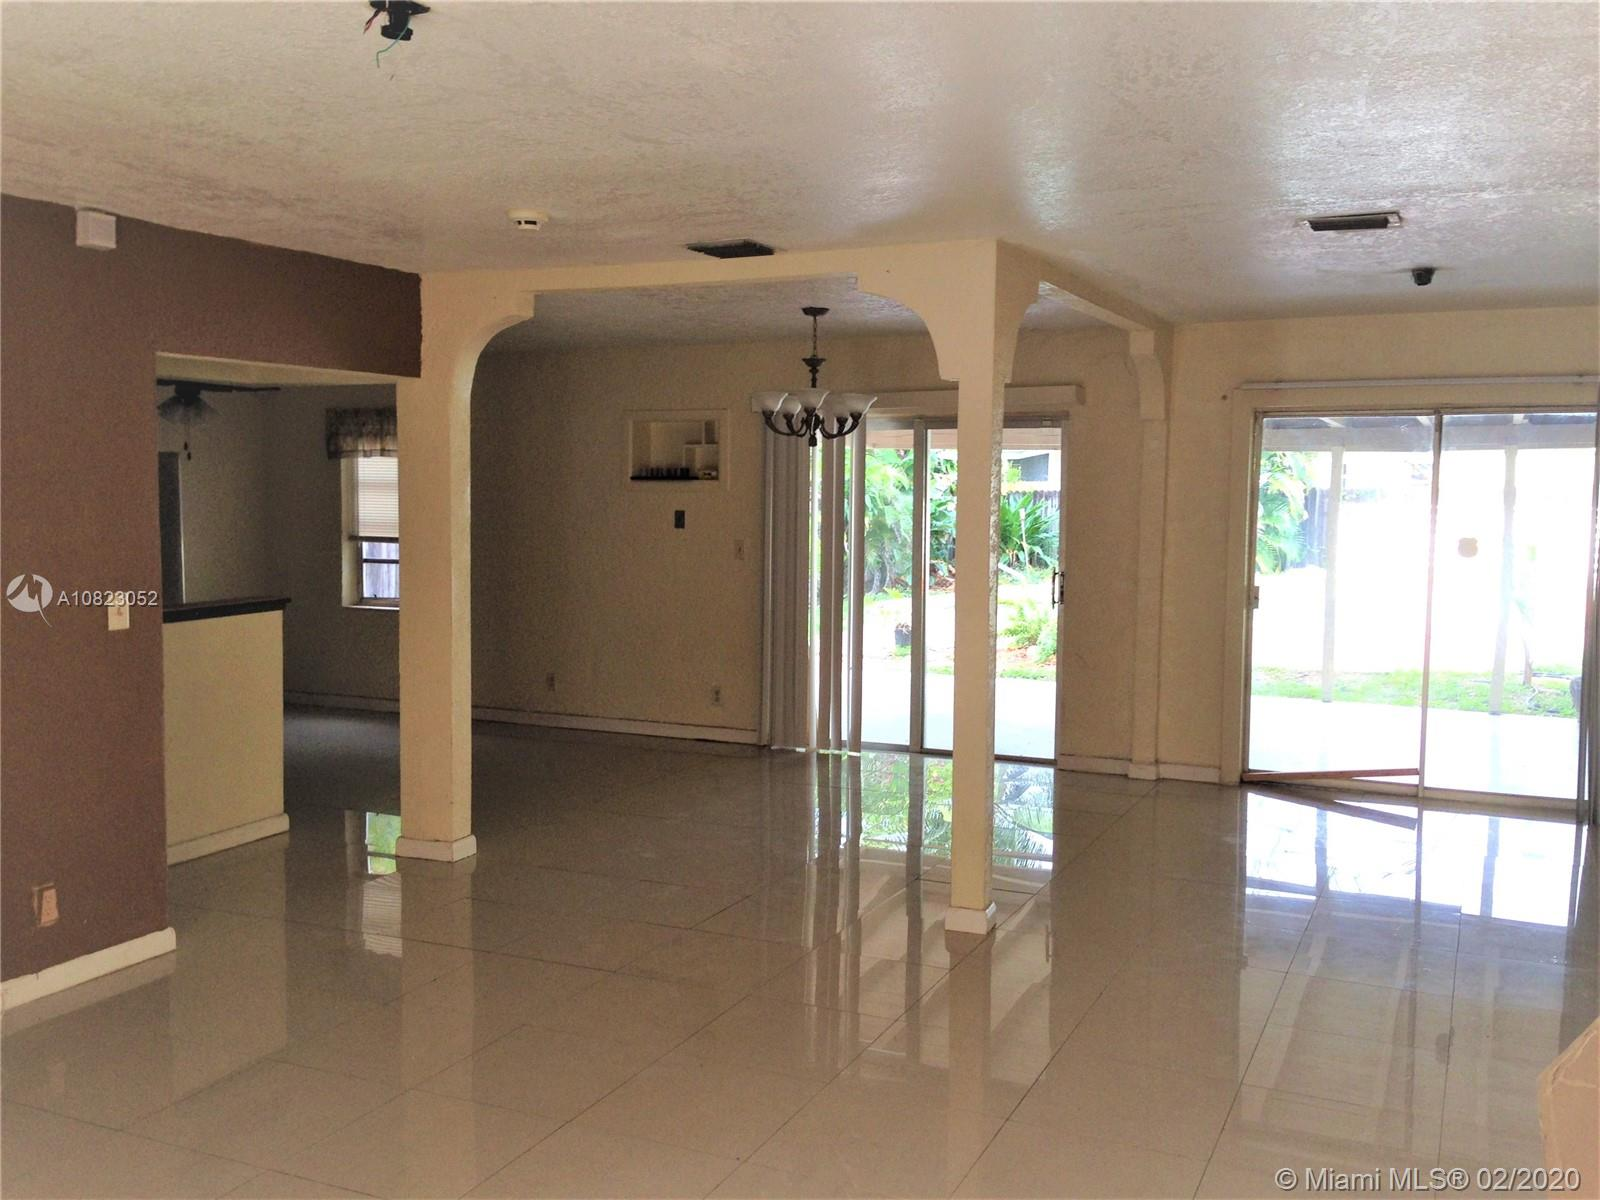 Property for sale at 1317 N Andrews Ave, Fort Lauderdale,  Florida 33311